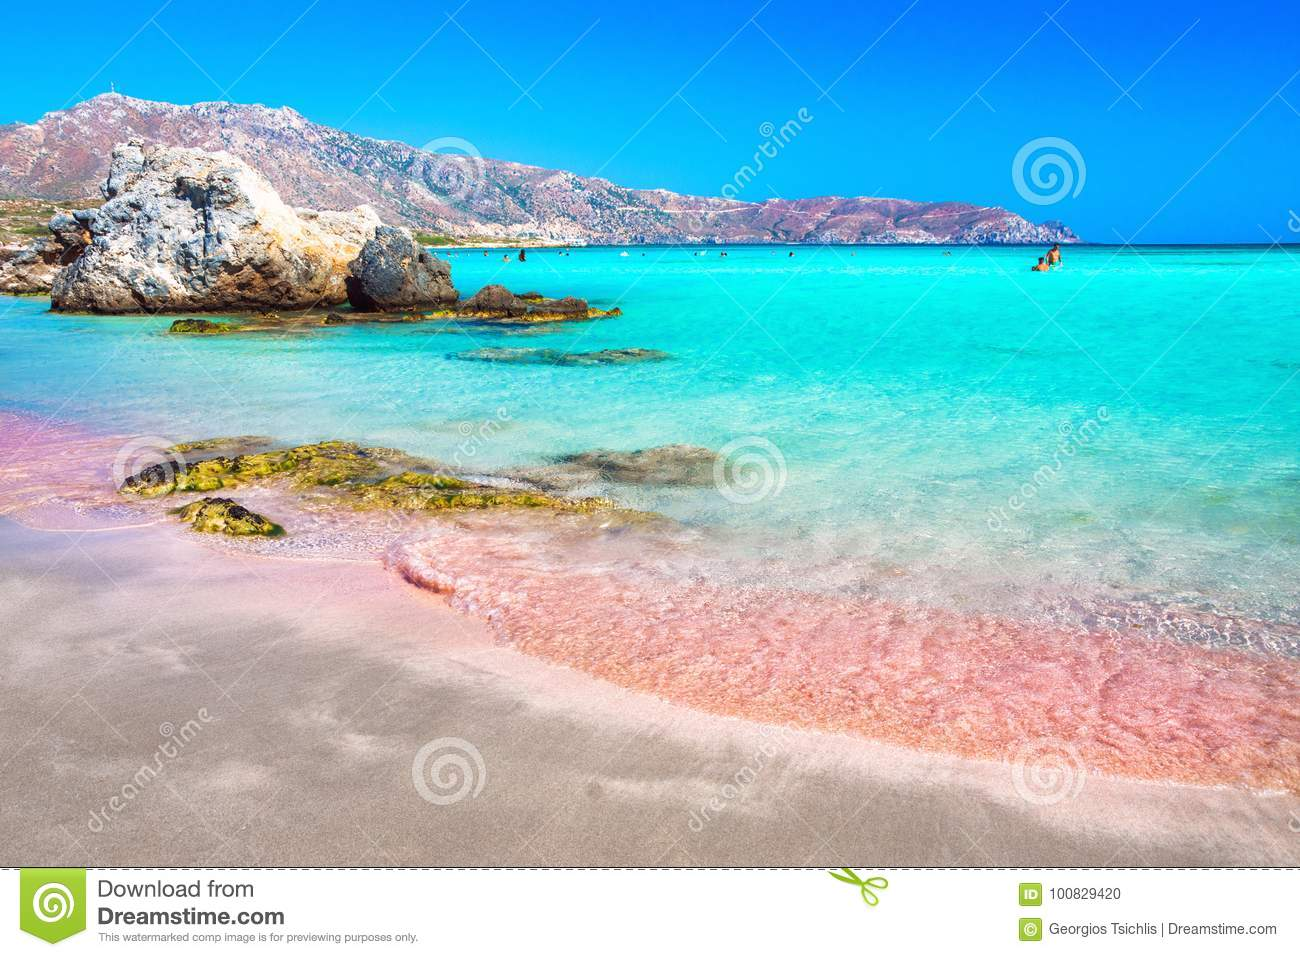 15db6659a9e423 Tropical Sandy Beach With Turquoise Water, In Elafonisi, Crete Stock ...